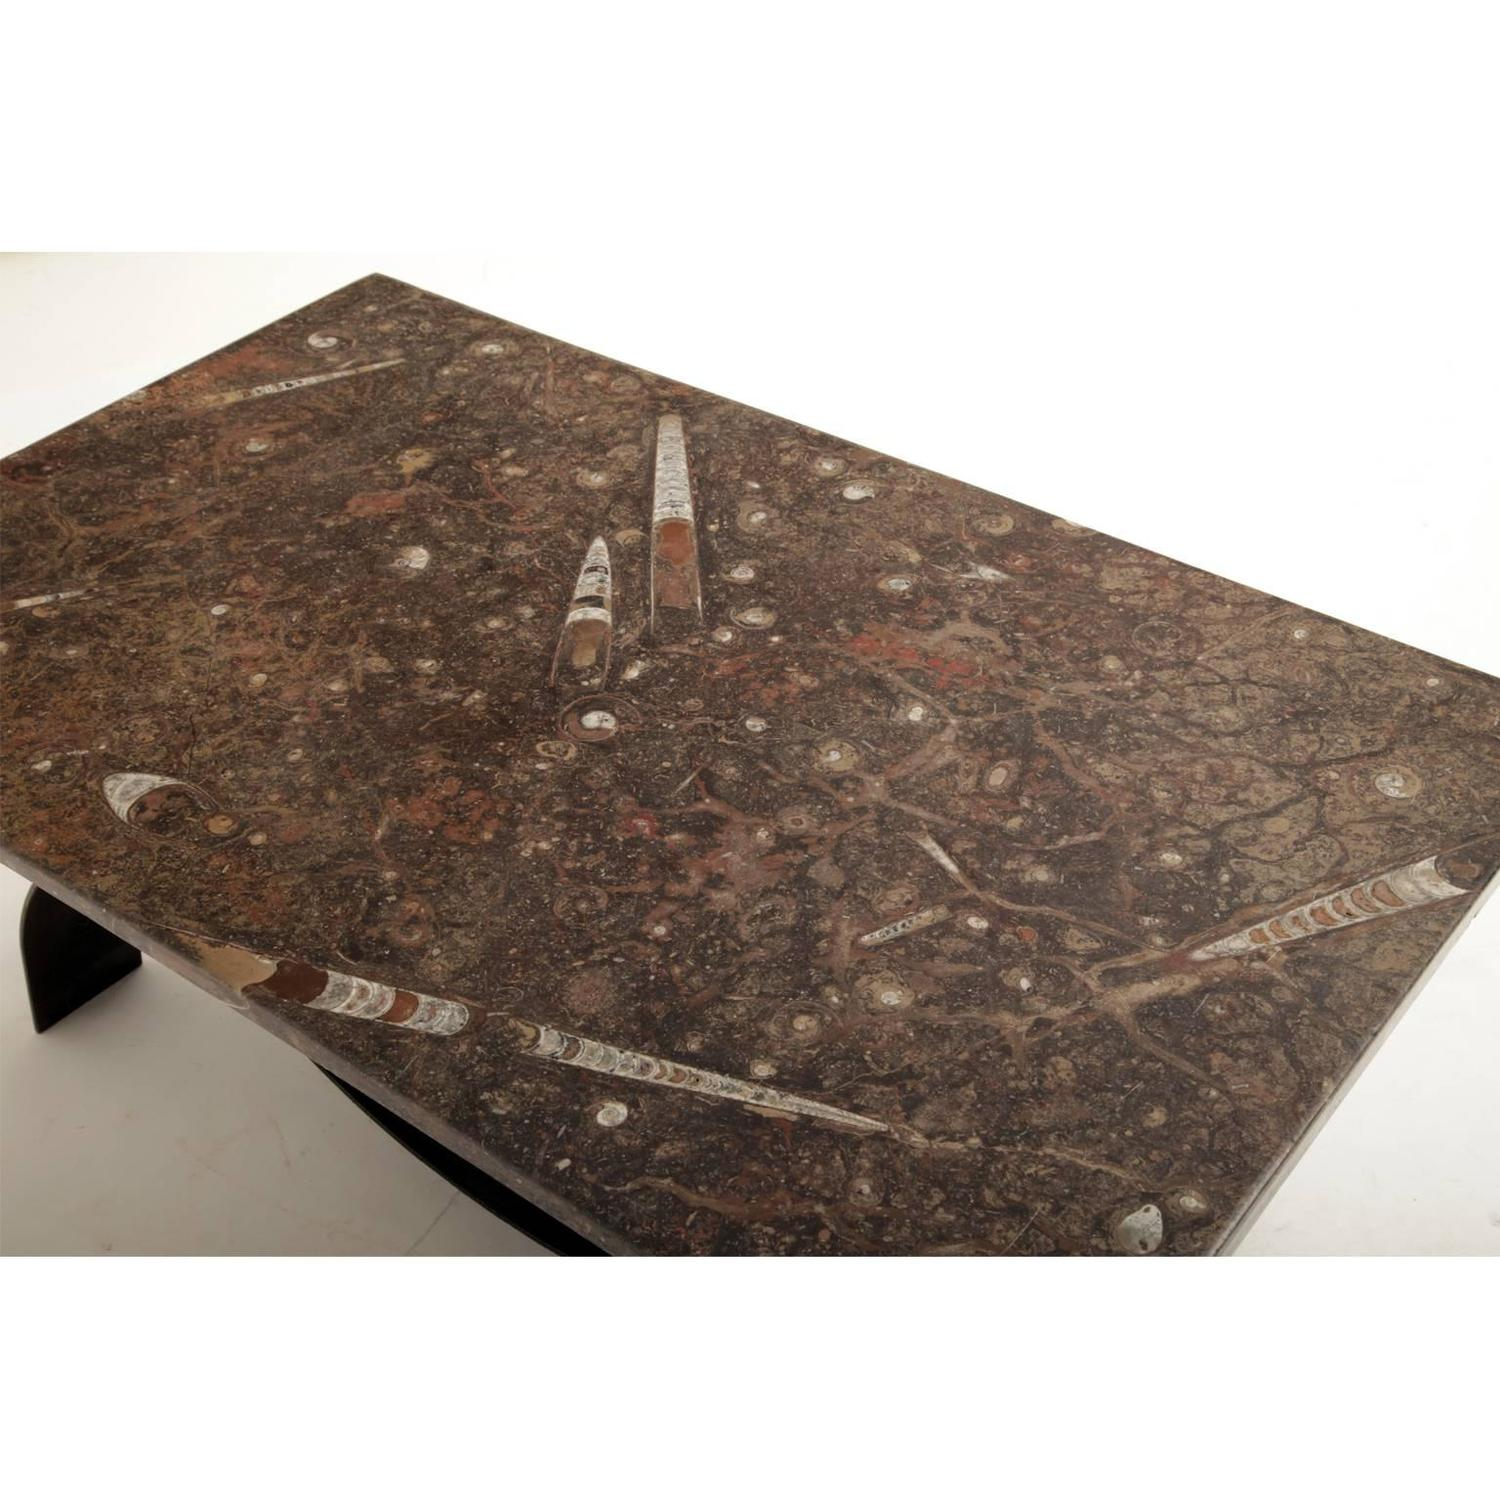 Modernism fossil top coffee table 1950s for sale at 1stdibs for Fossil coffee table